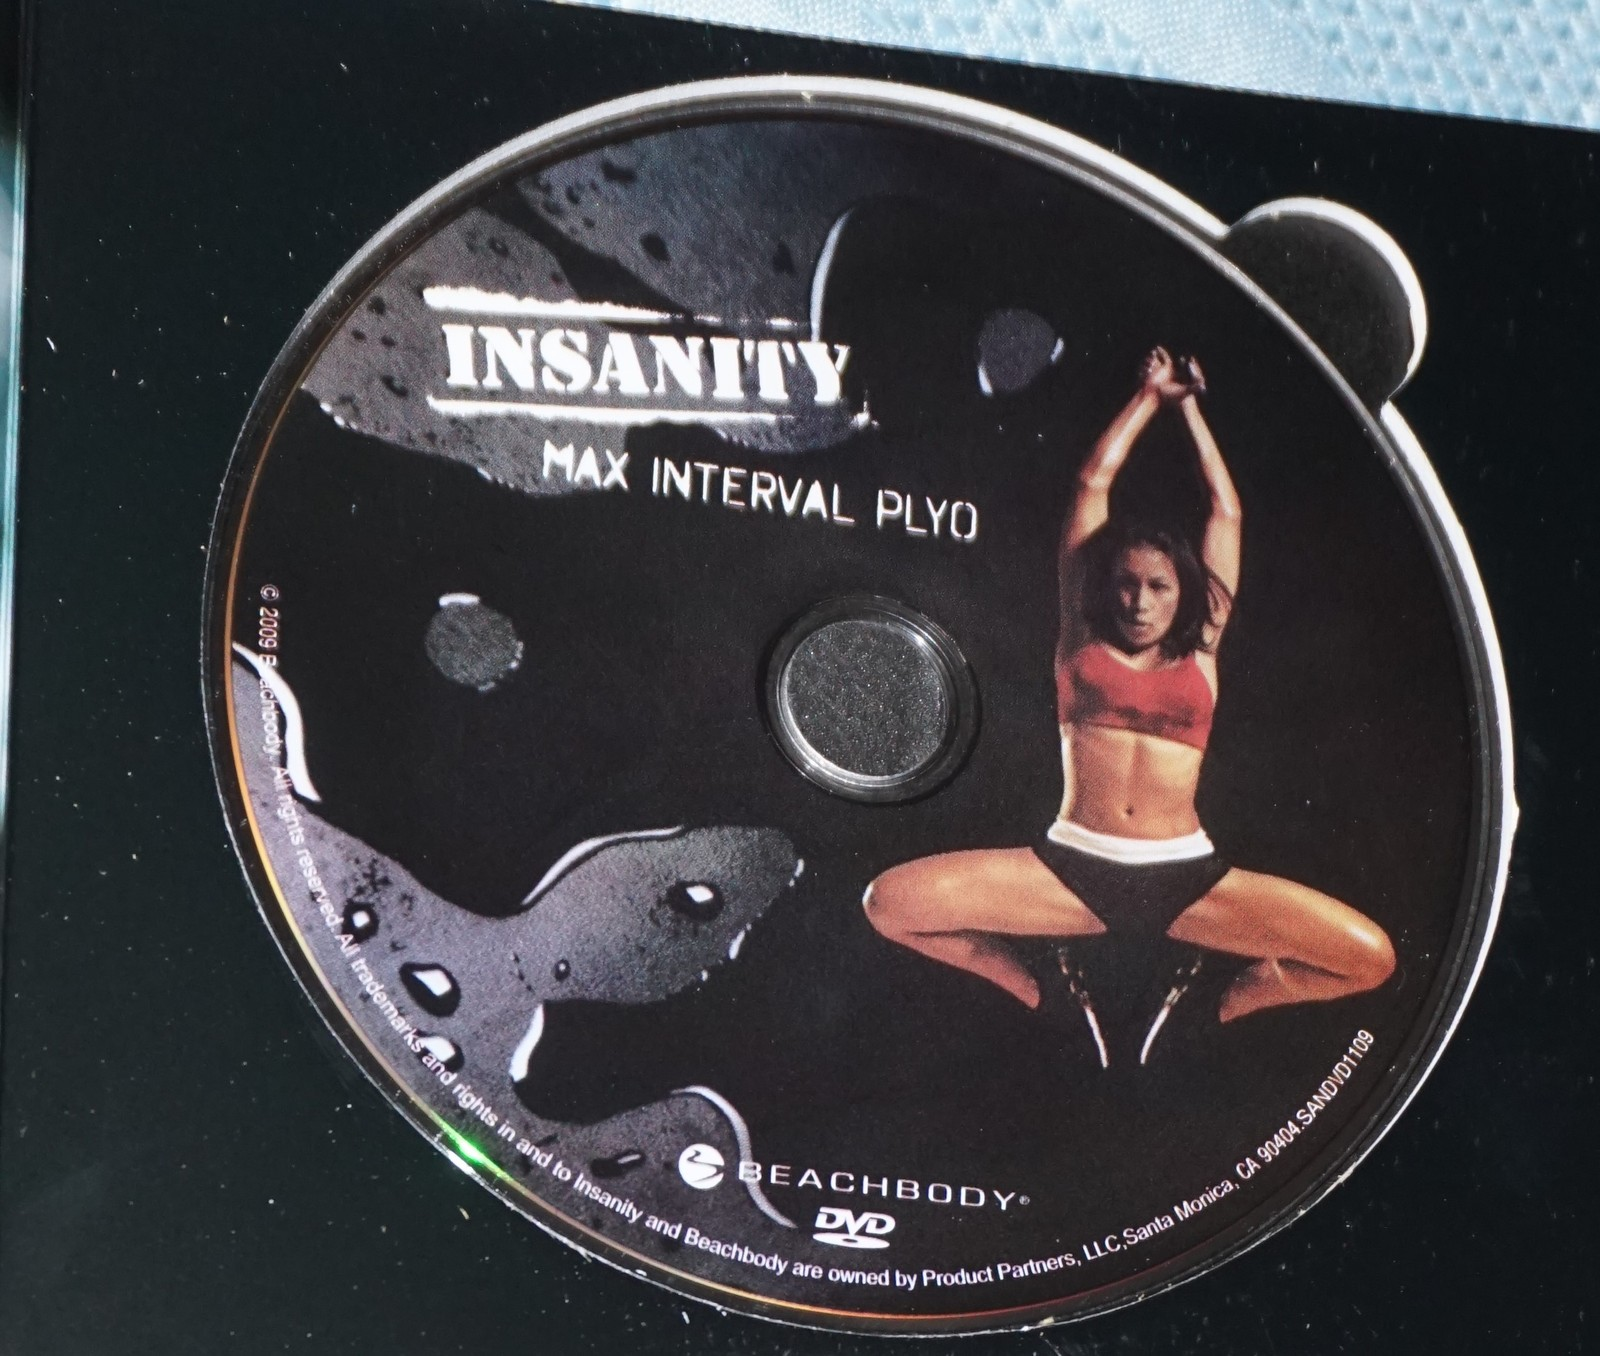 Primary image for Beach Body Insanity Max Interval Pylo Workout Replacement DVD